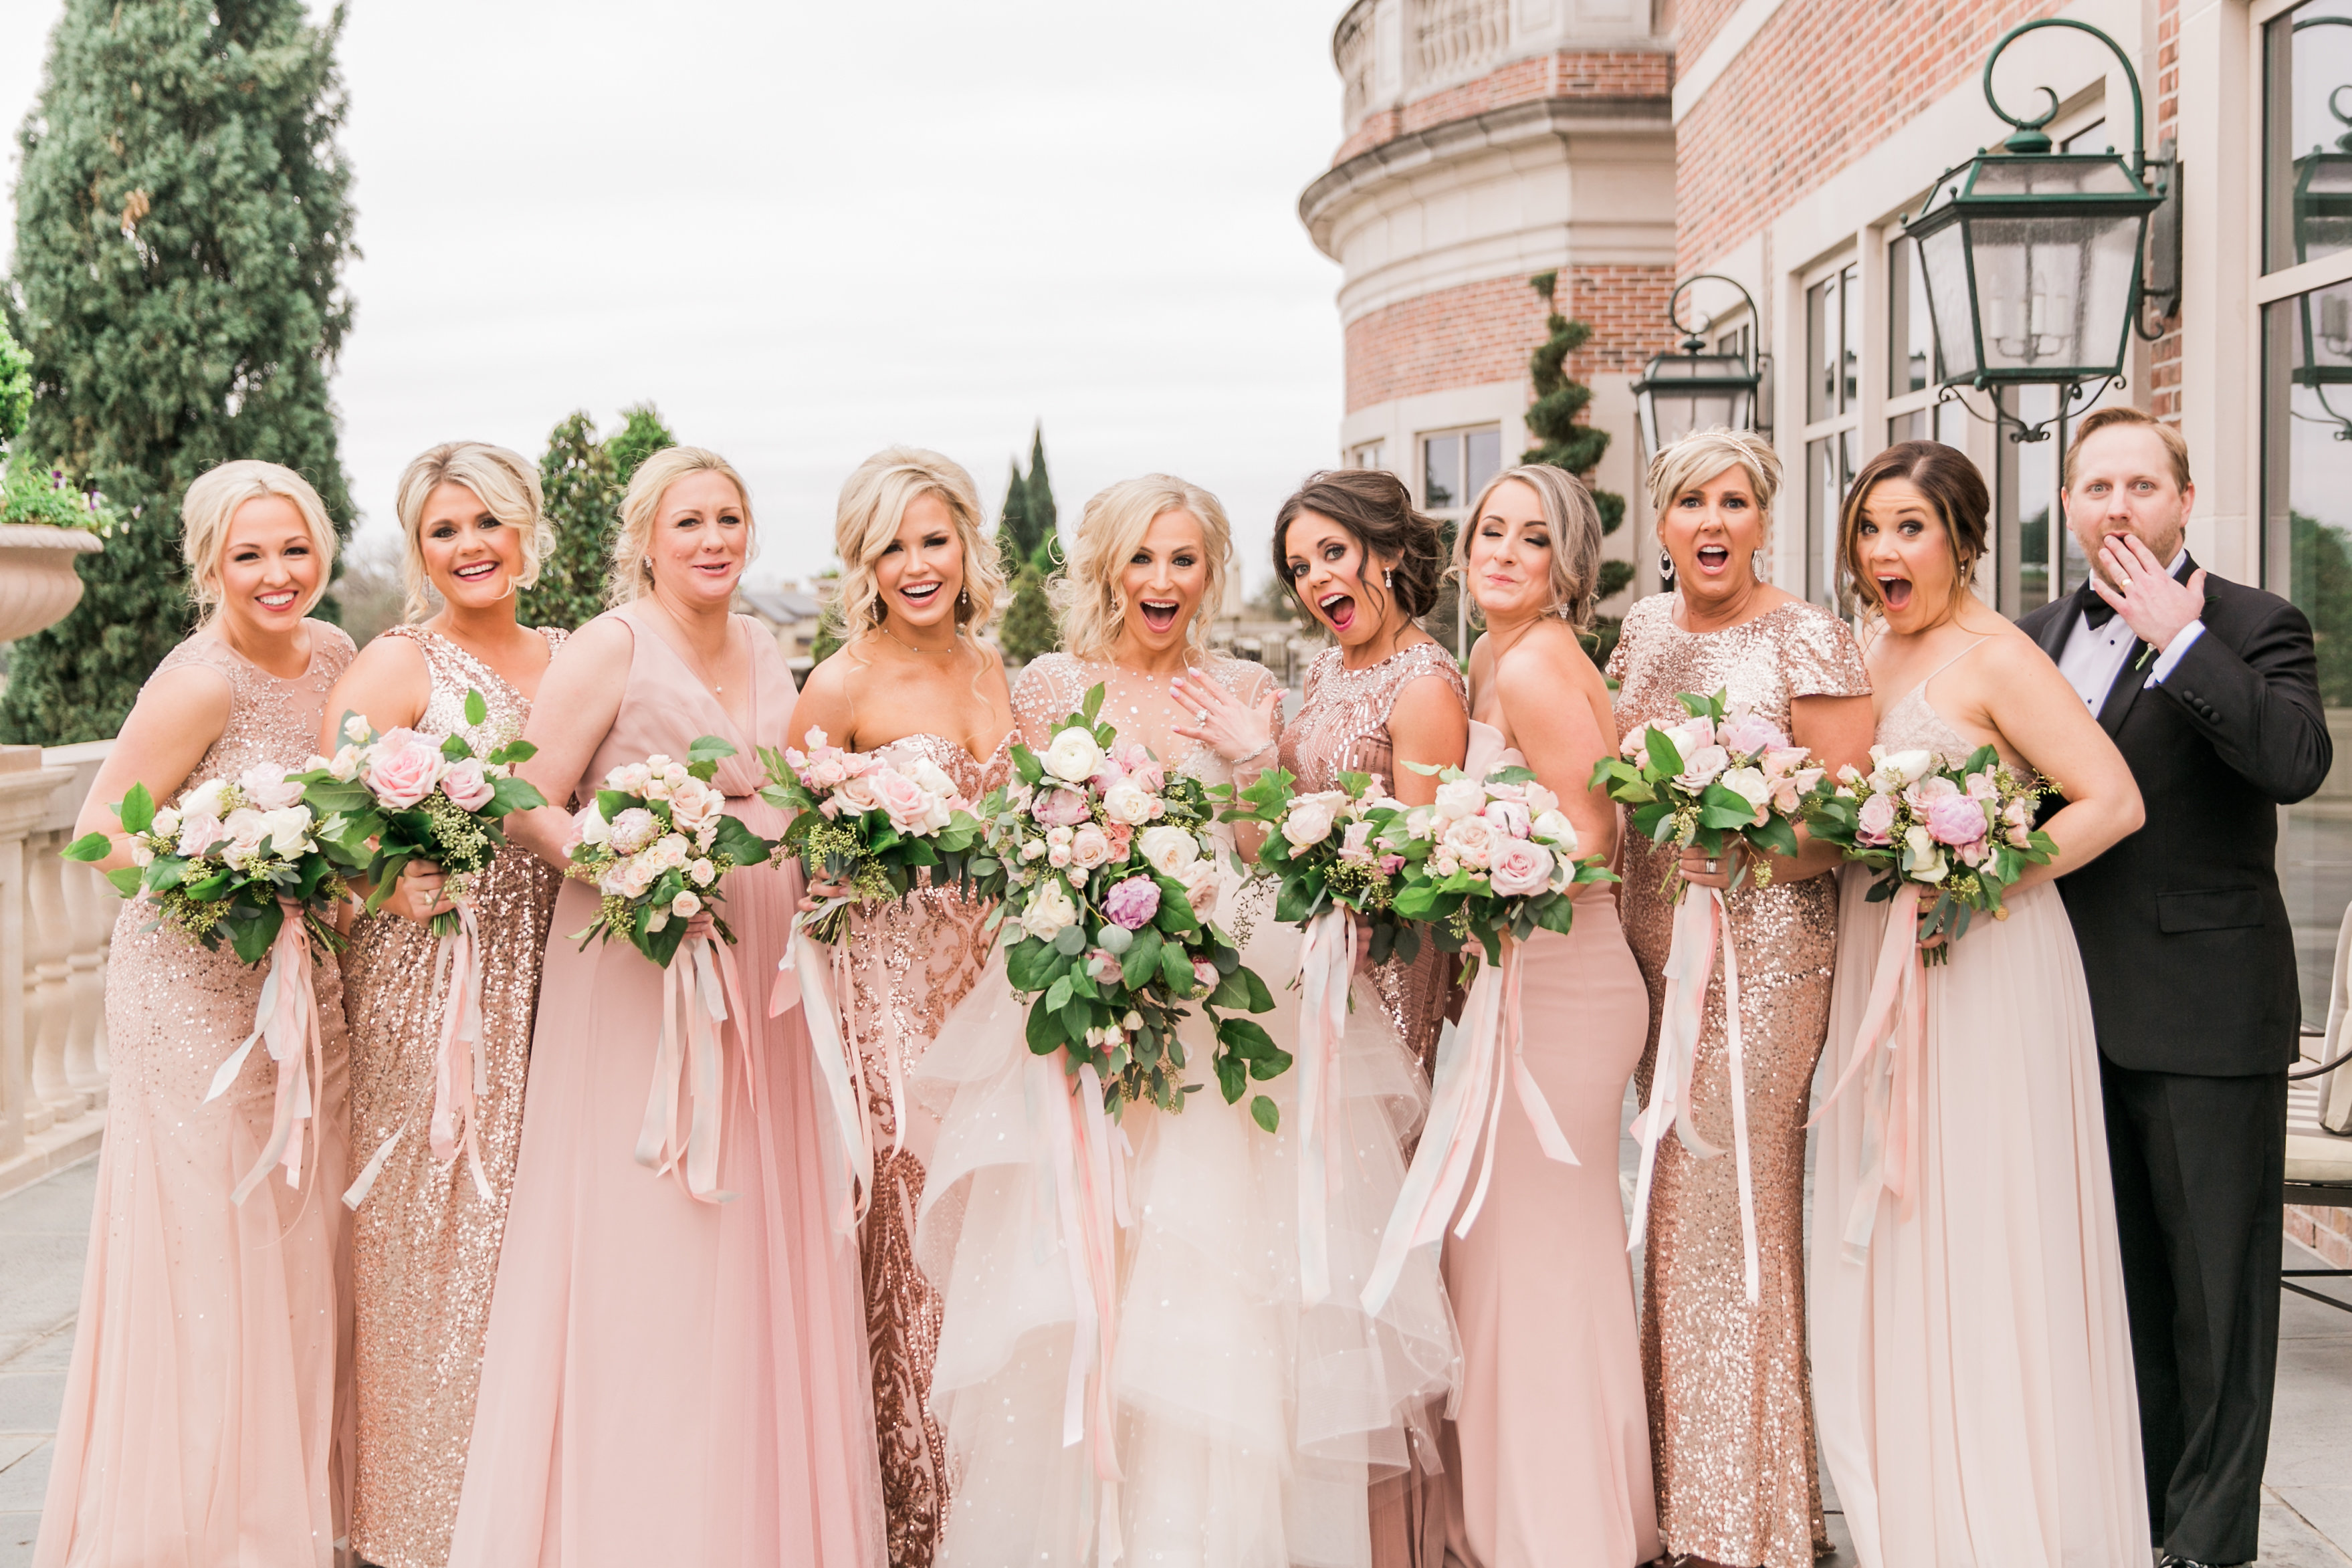 How to choose your bridesmaids bridal party randa carrabba to my loving bridal party my moh bridesmaids brides gentleman house party and even my adorable flower girl thank you all for being so loving and ombrellifo Images